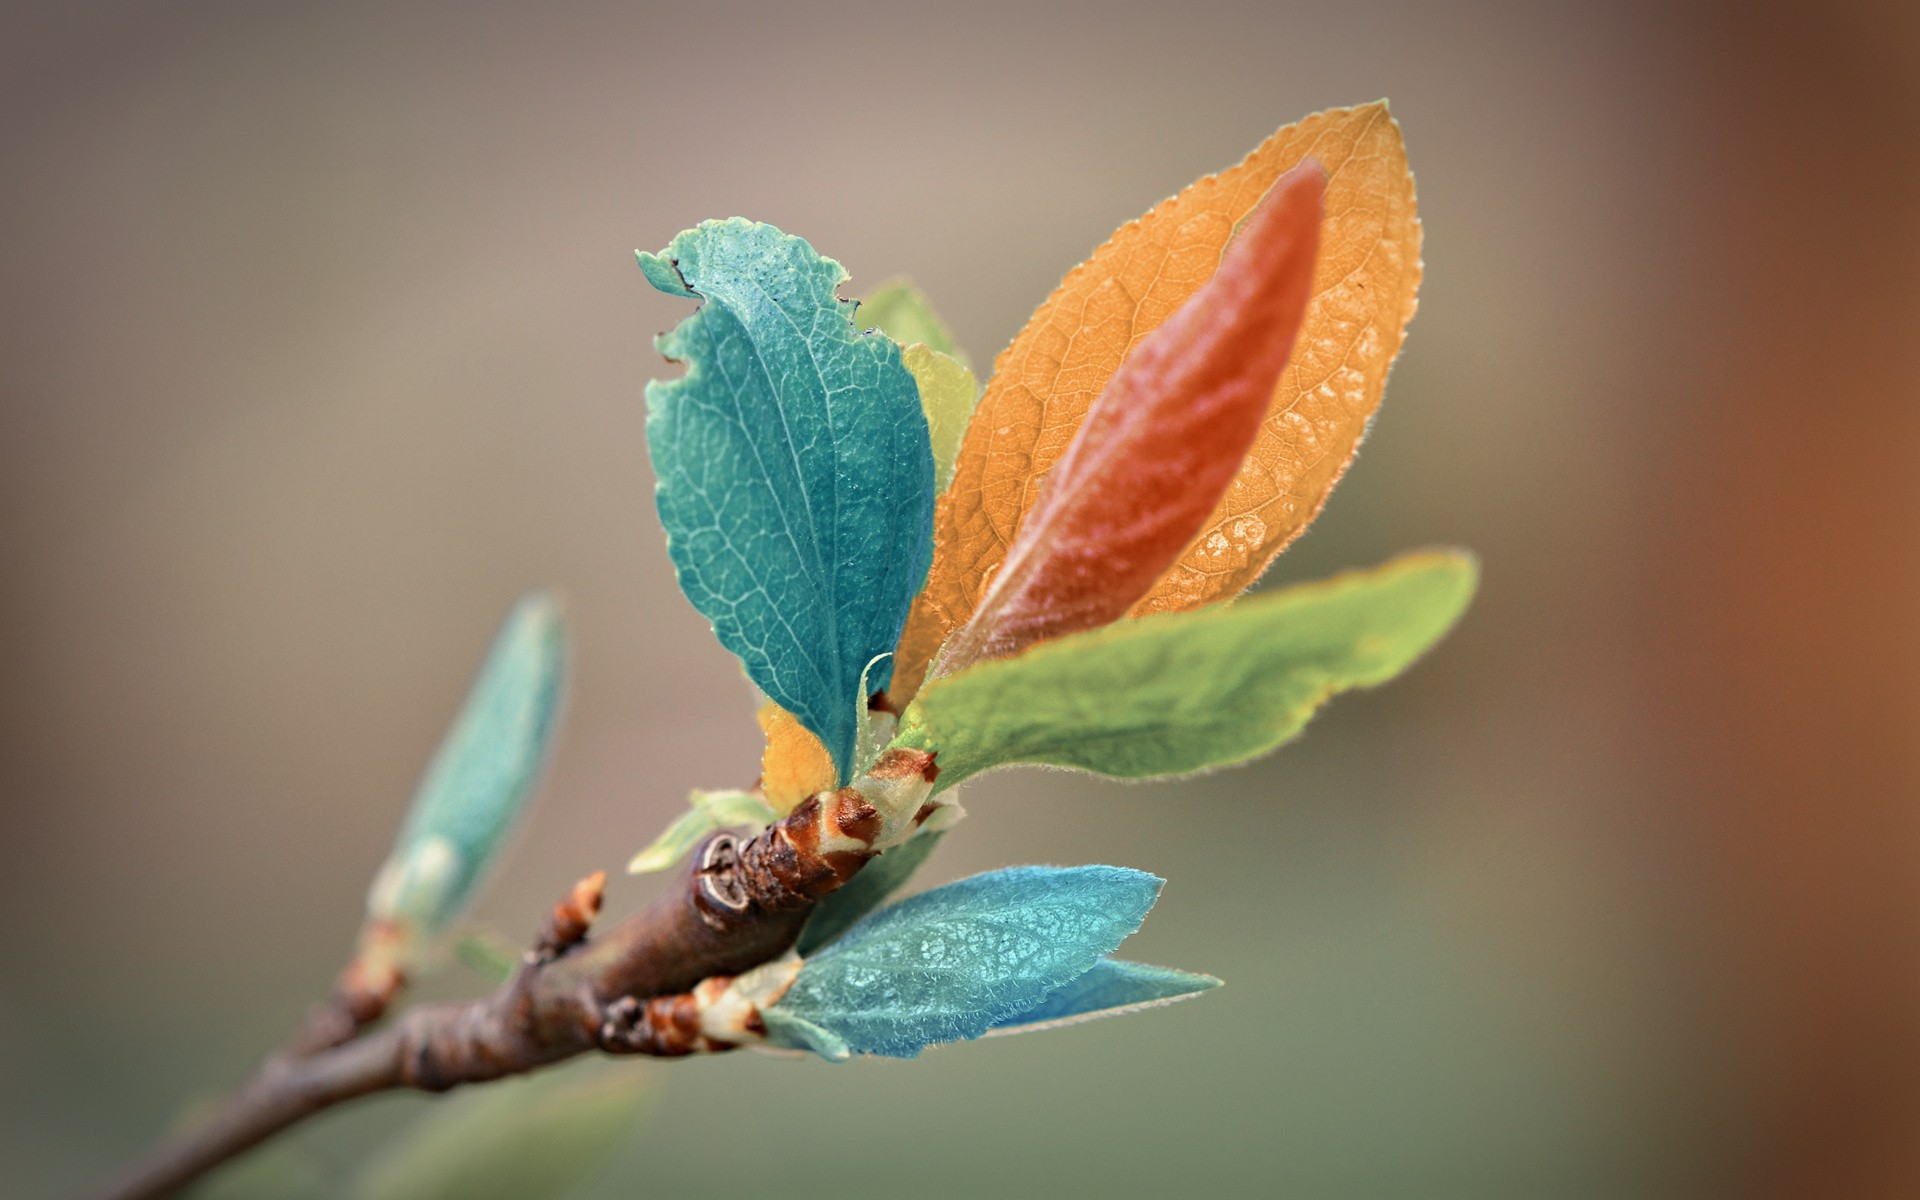 Leaves Macro Wallpaper 39003 1920x1080 px